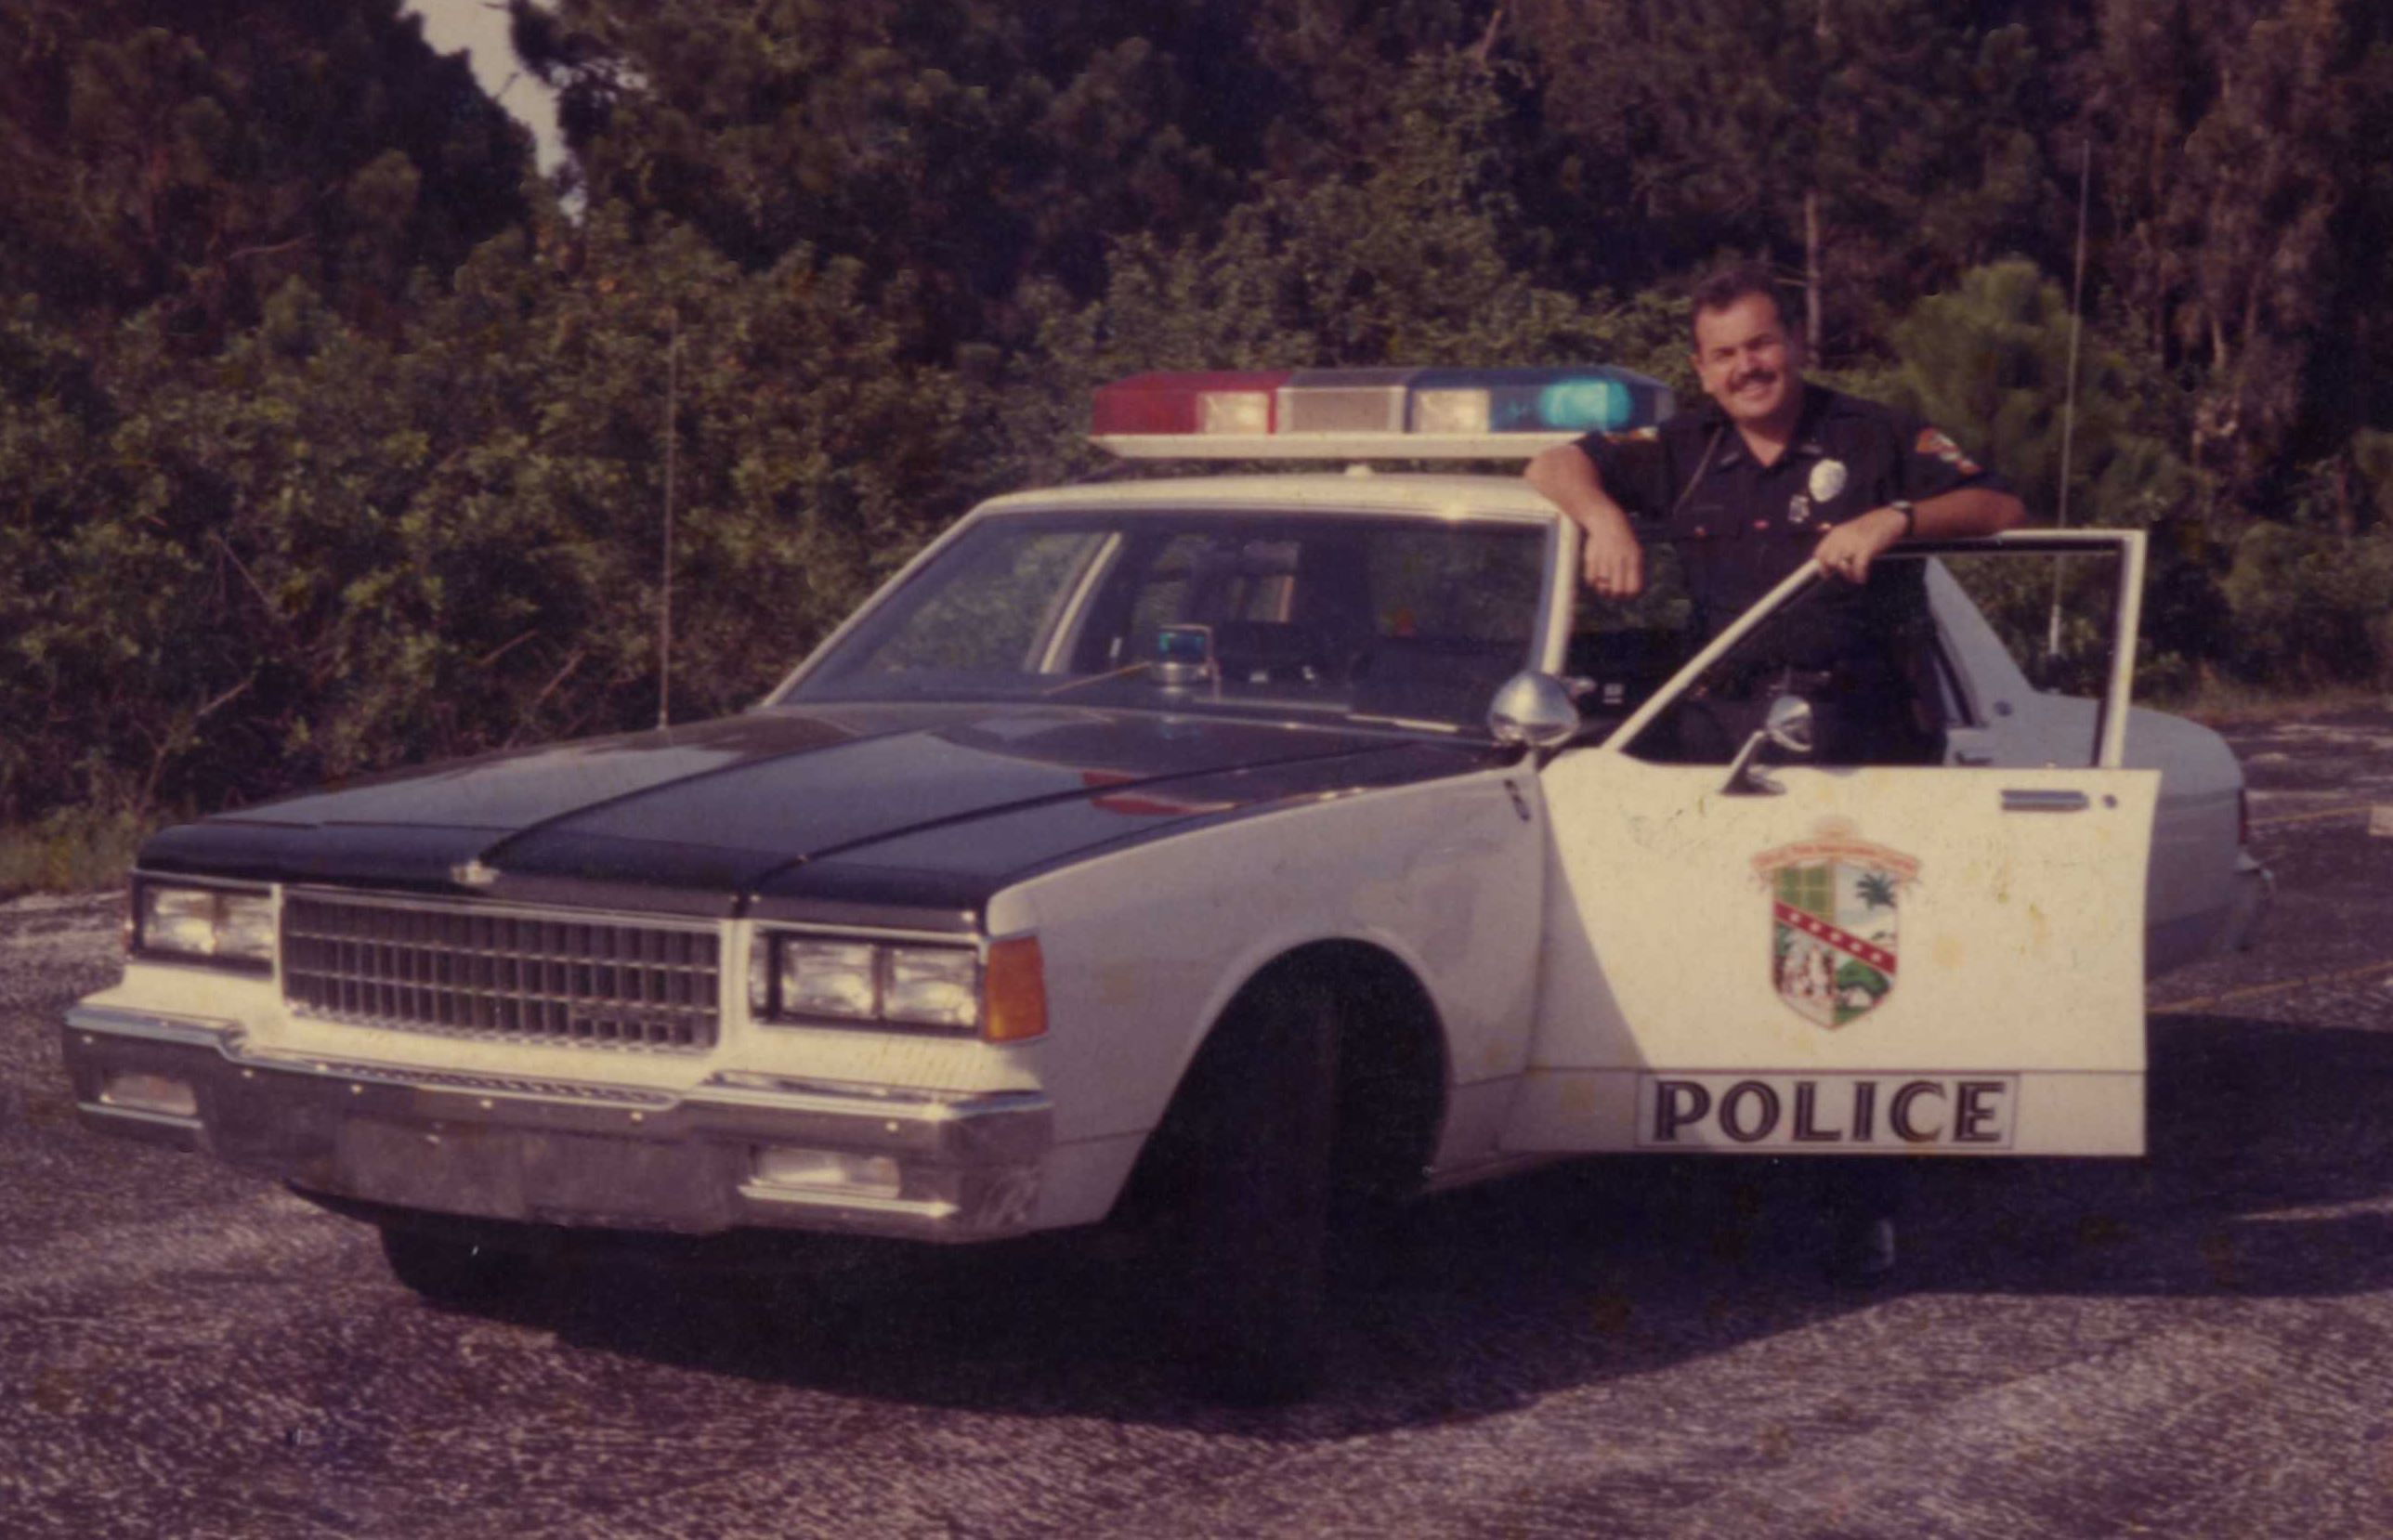 Police Car and Officer Circa 1990's